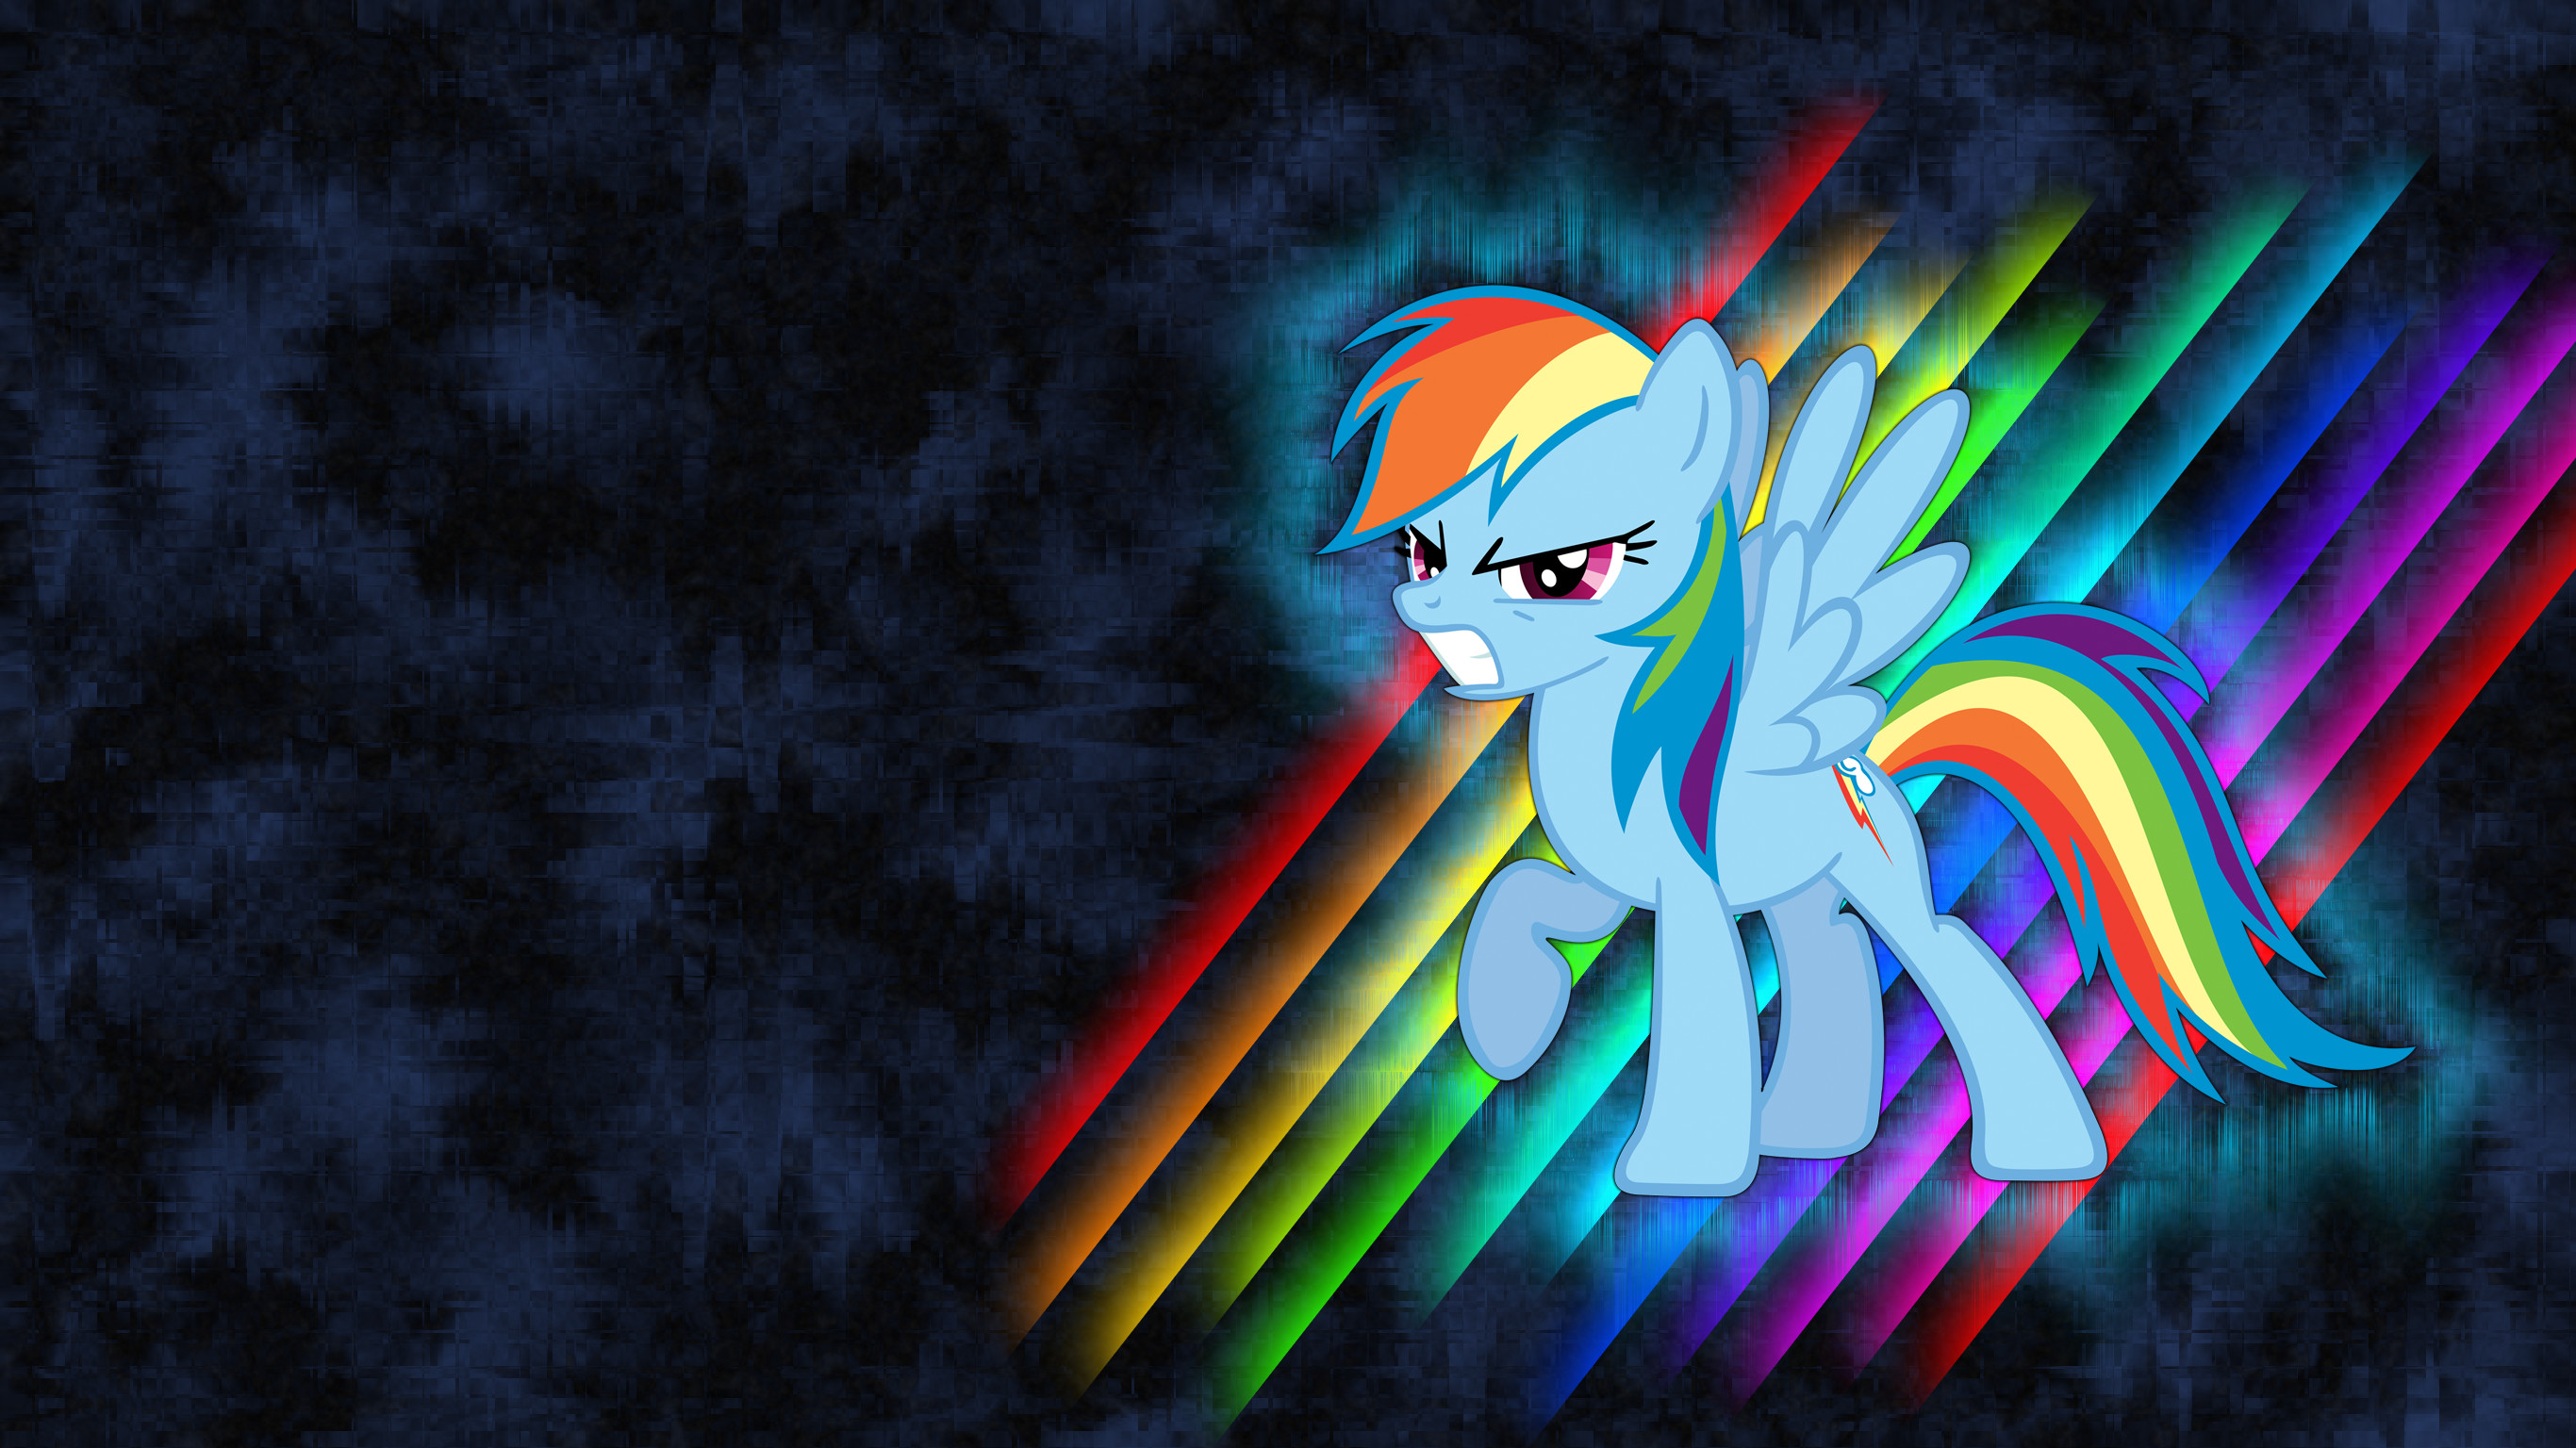 2732x1536 Rainbow dash wallpaper desktop.